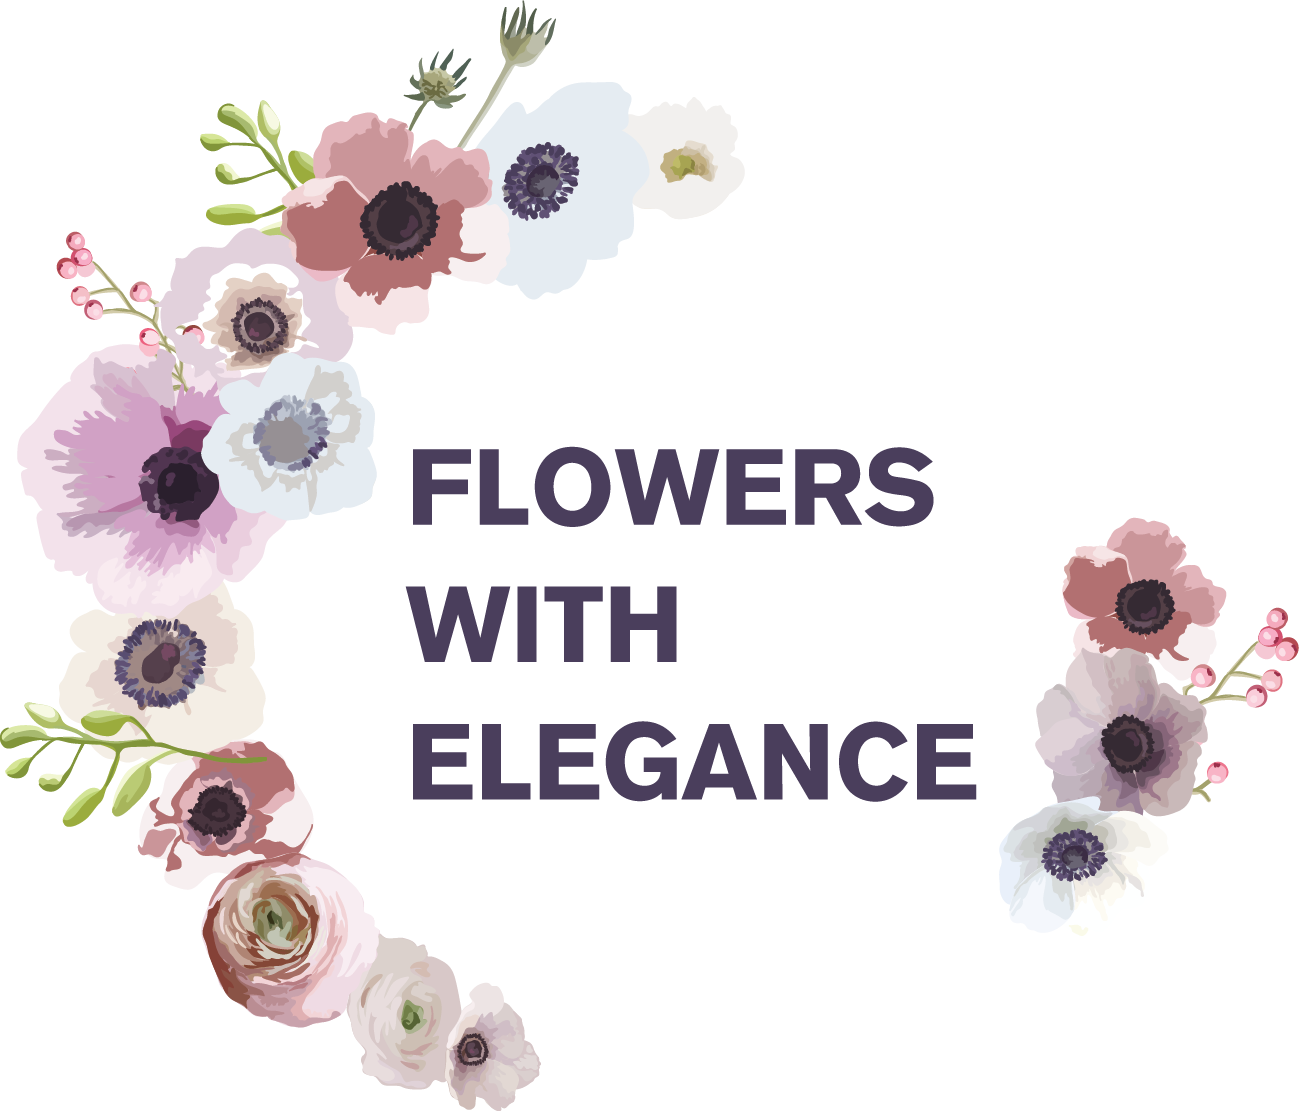 Flowers with elegance